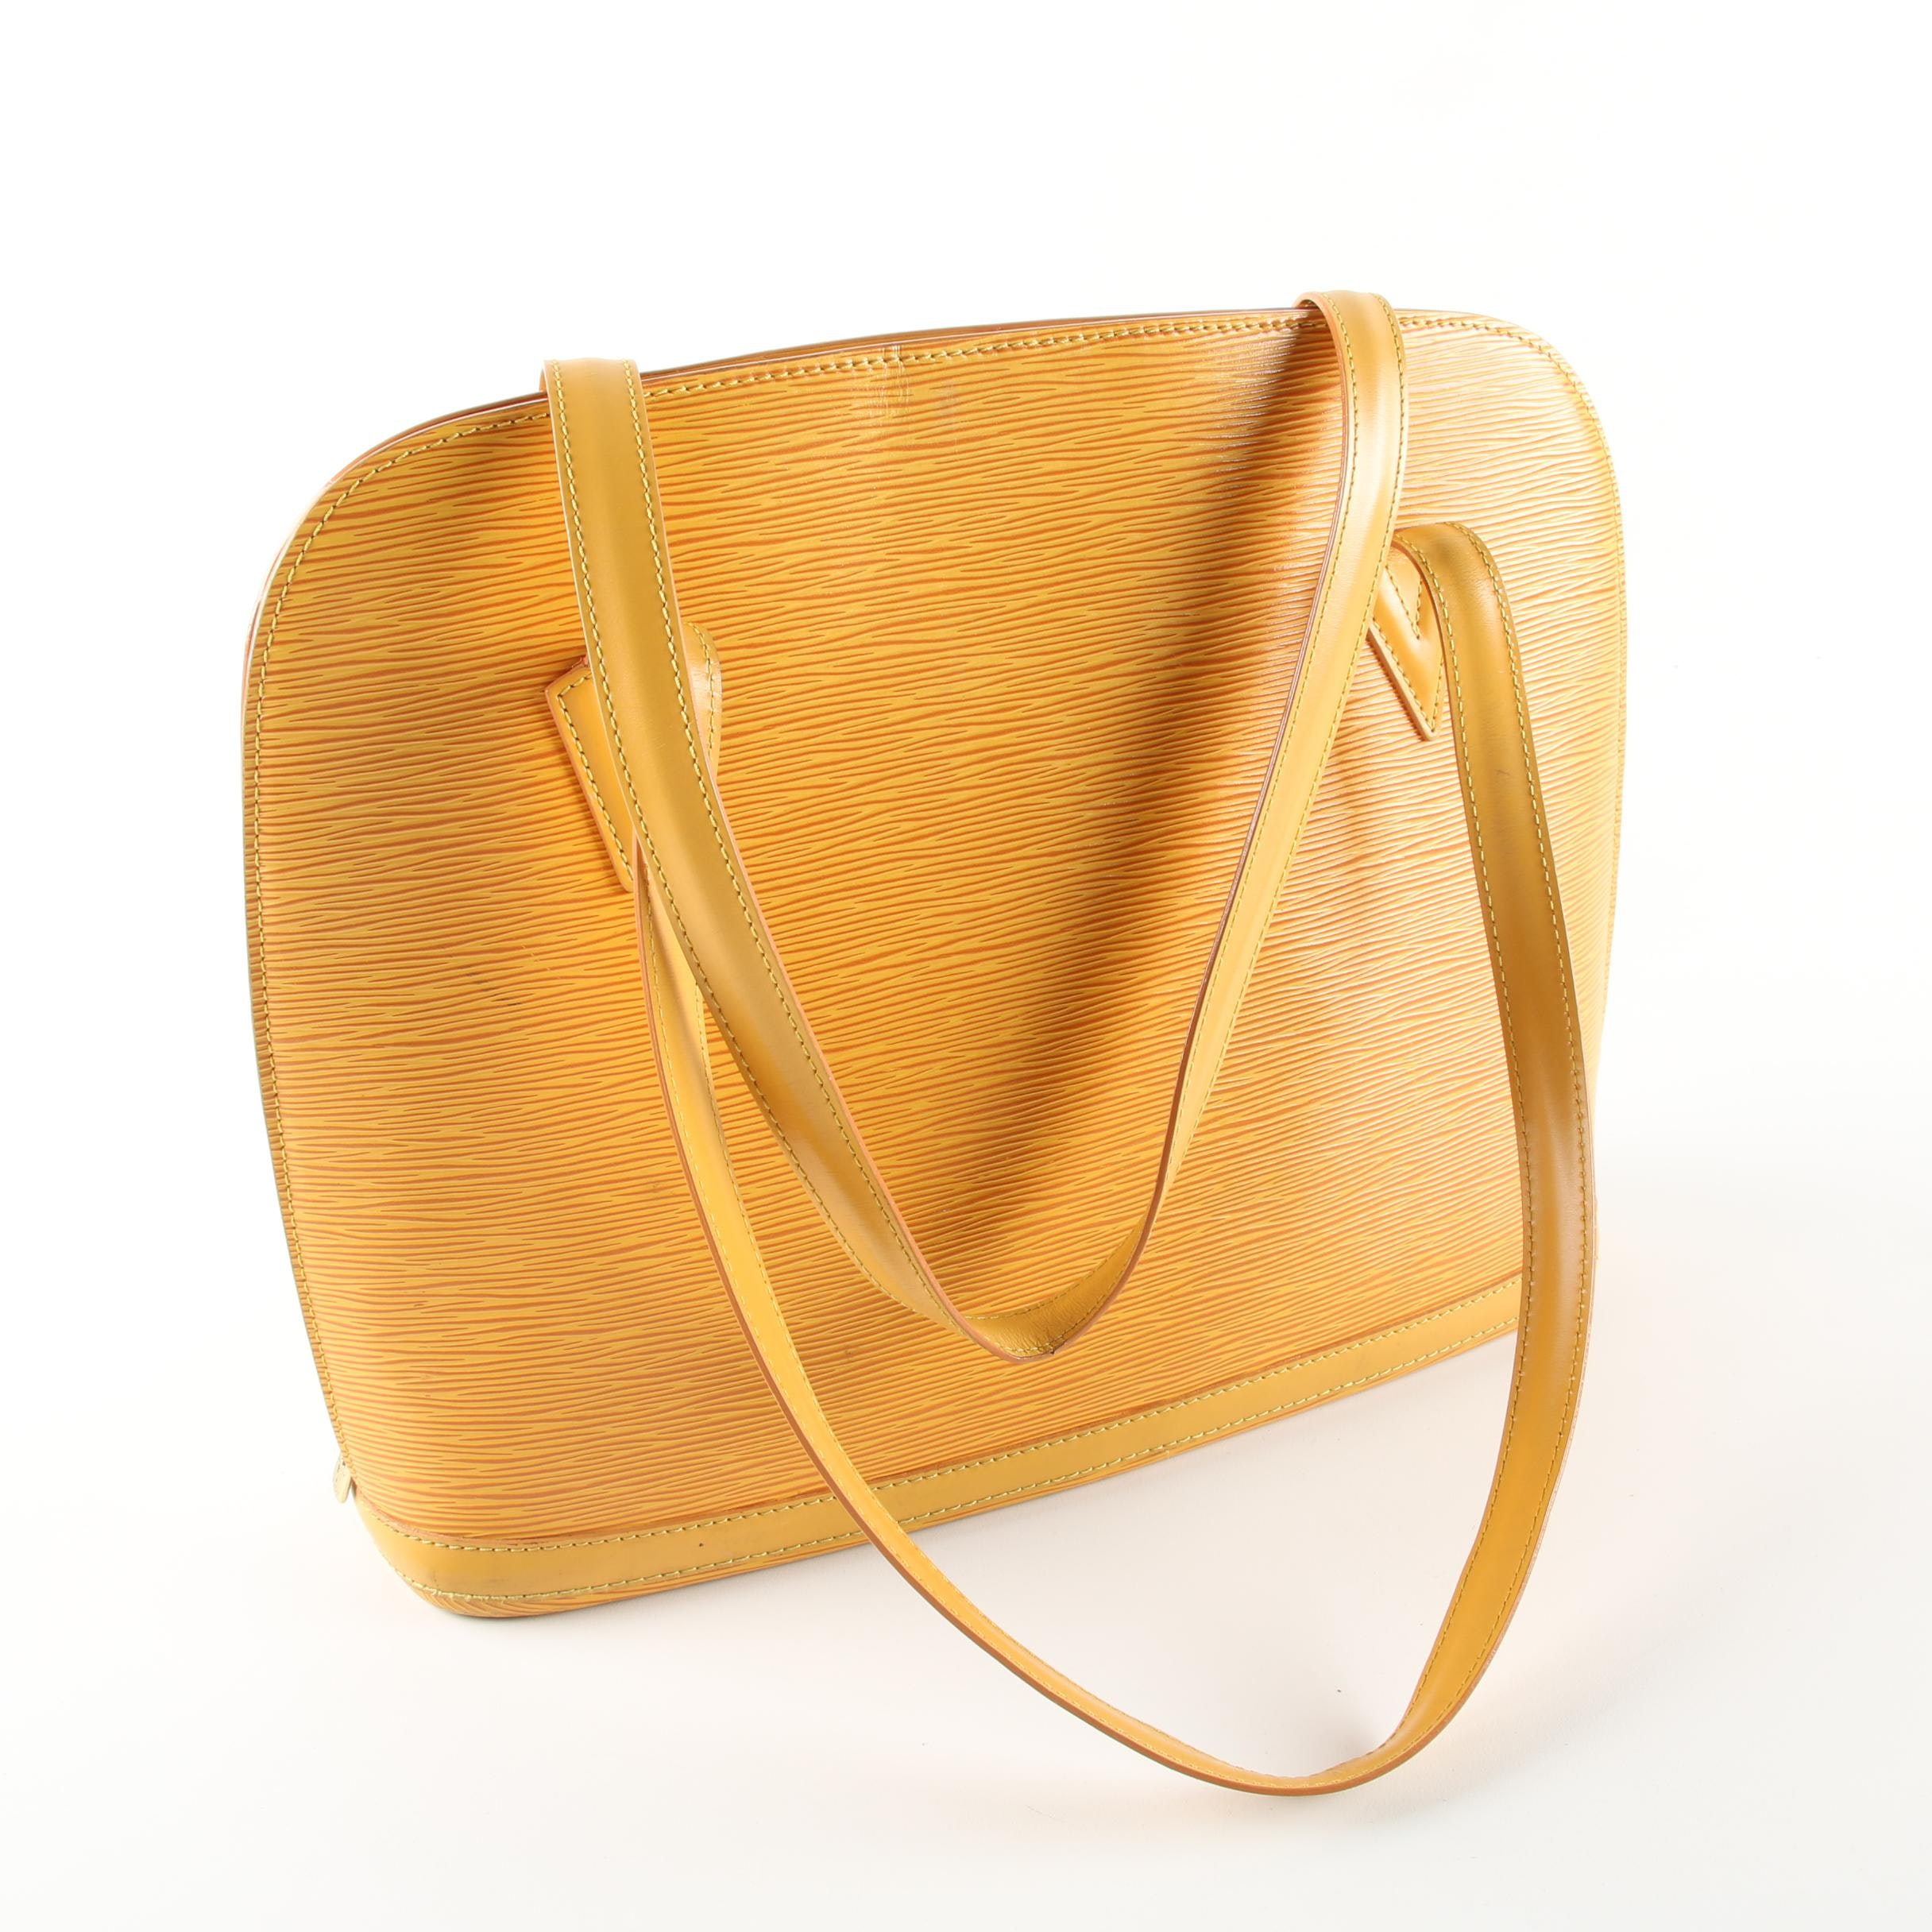 Louis Vuitton Tassil Yellow Epi Leather Lussac Shoulder Bag